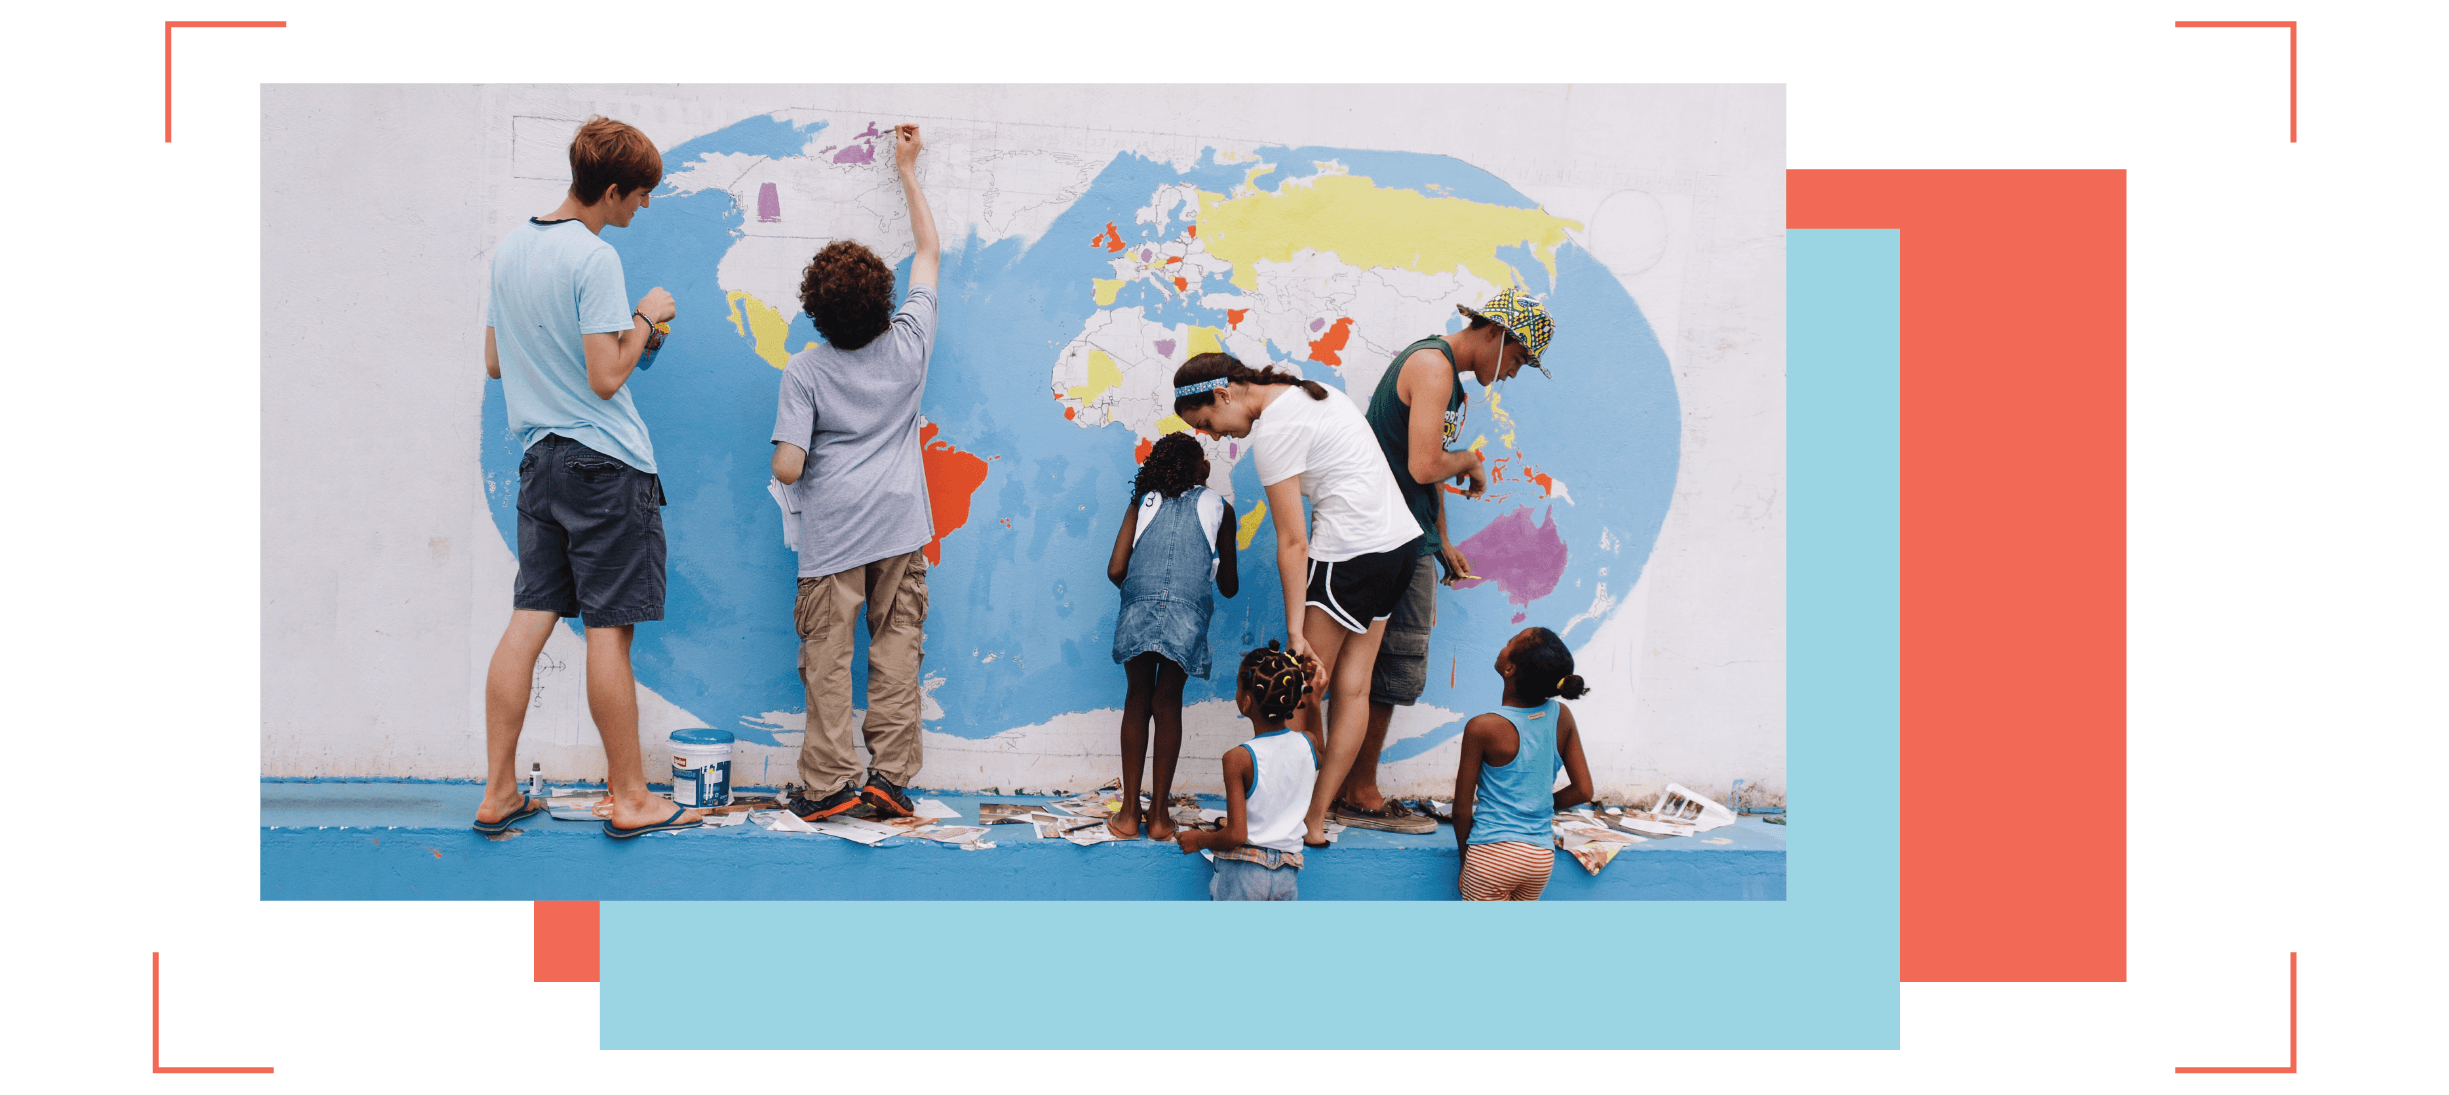 Students and young children paint a wall mural depicting a map of the world.